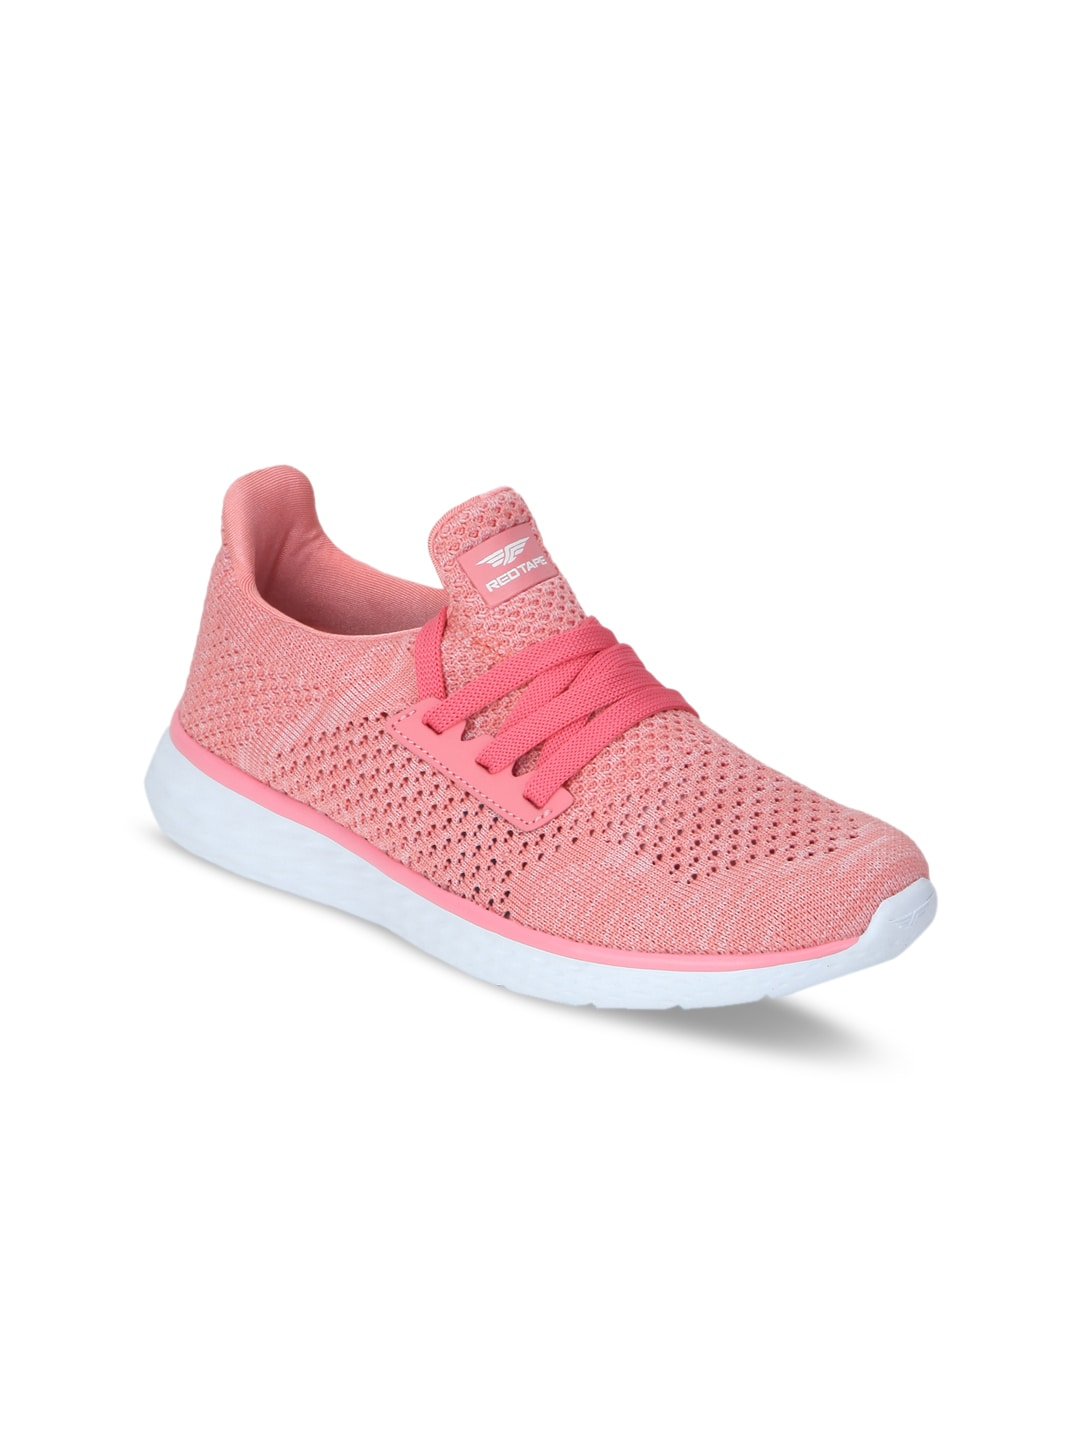 cbaed73cfeb Sports Shoes for Women - Buy Women Sports Shoes Online